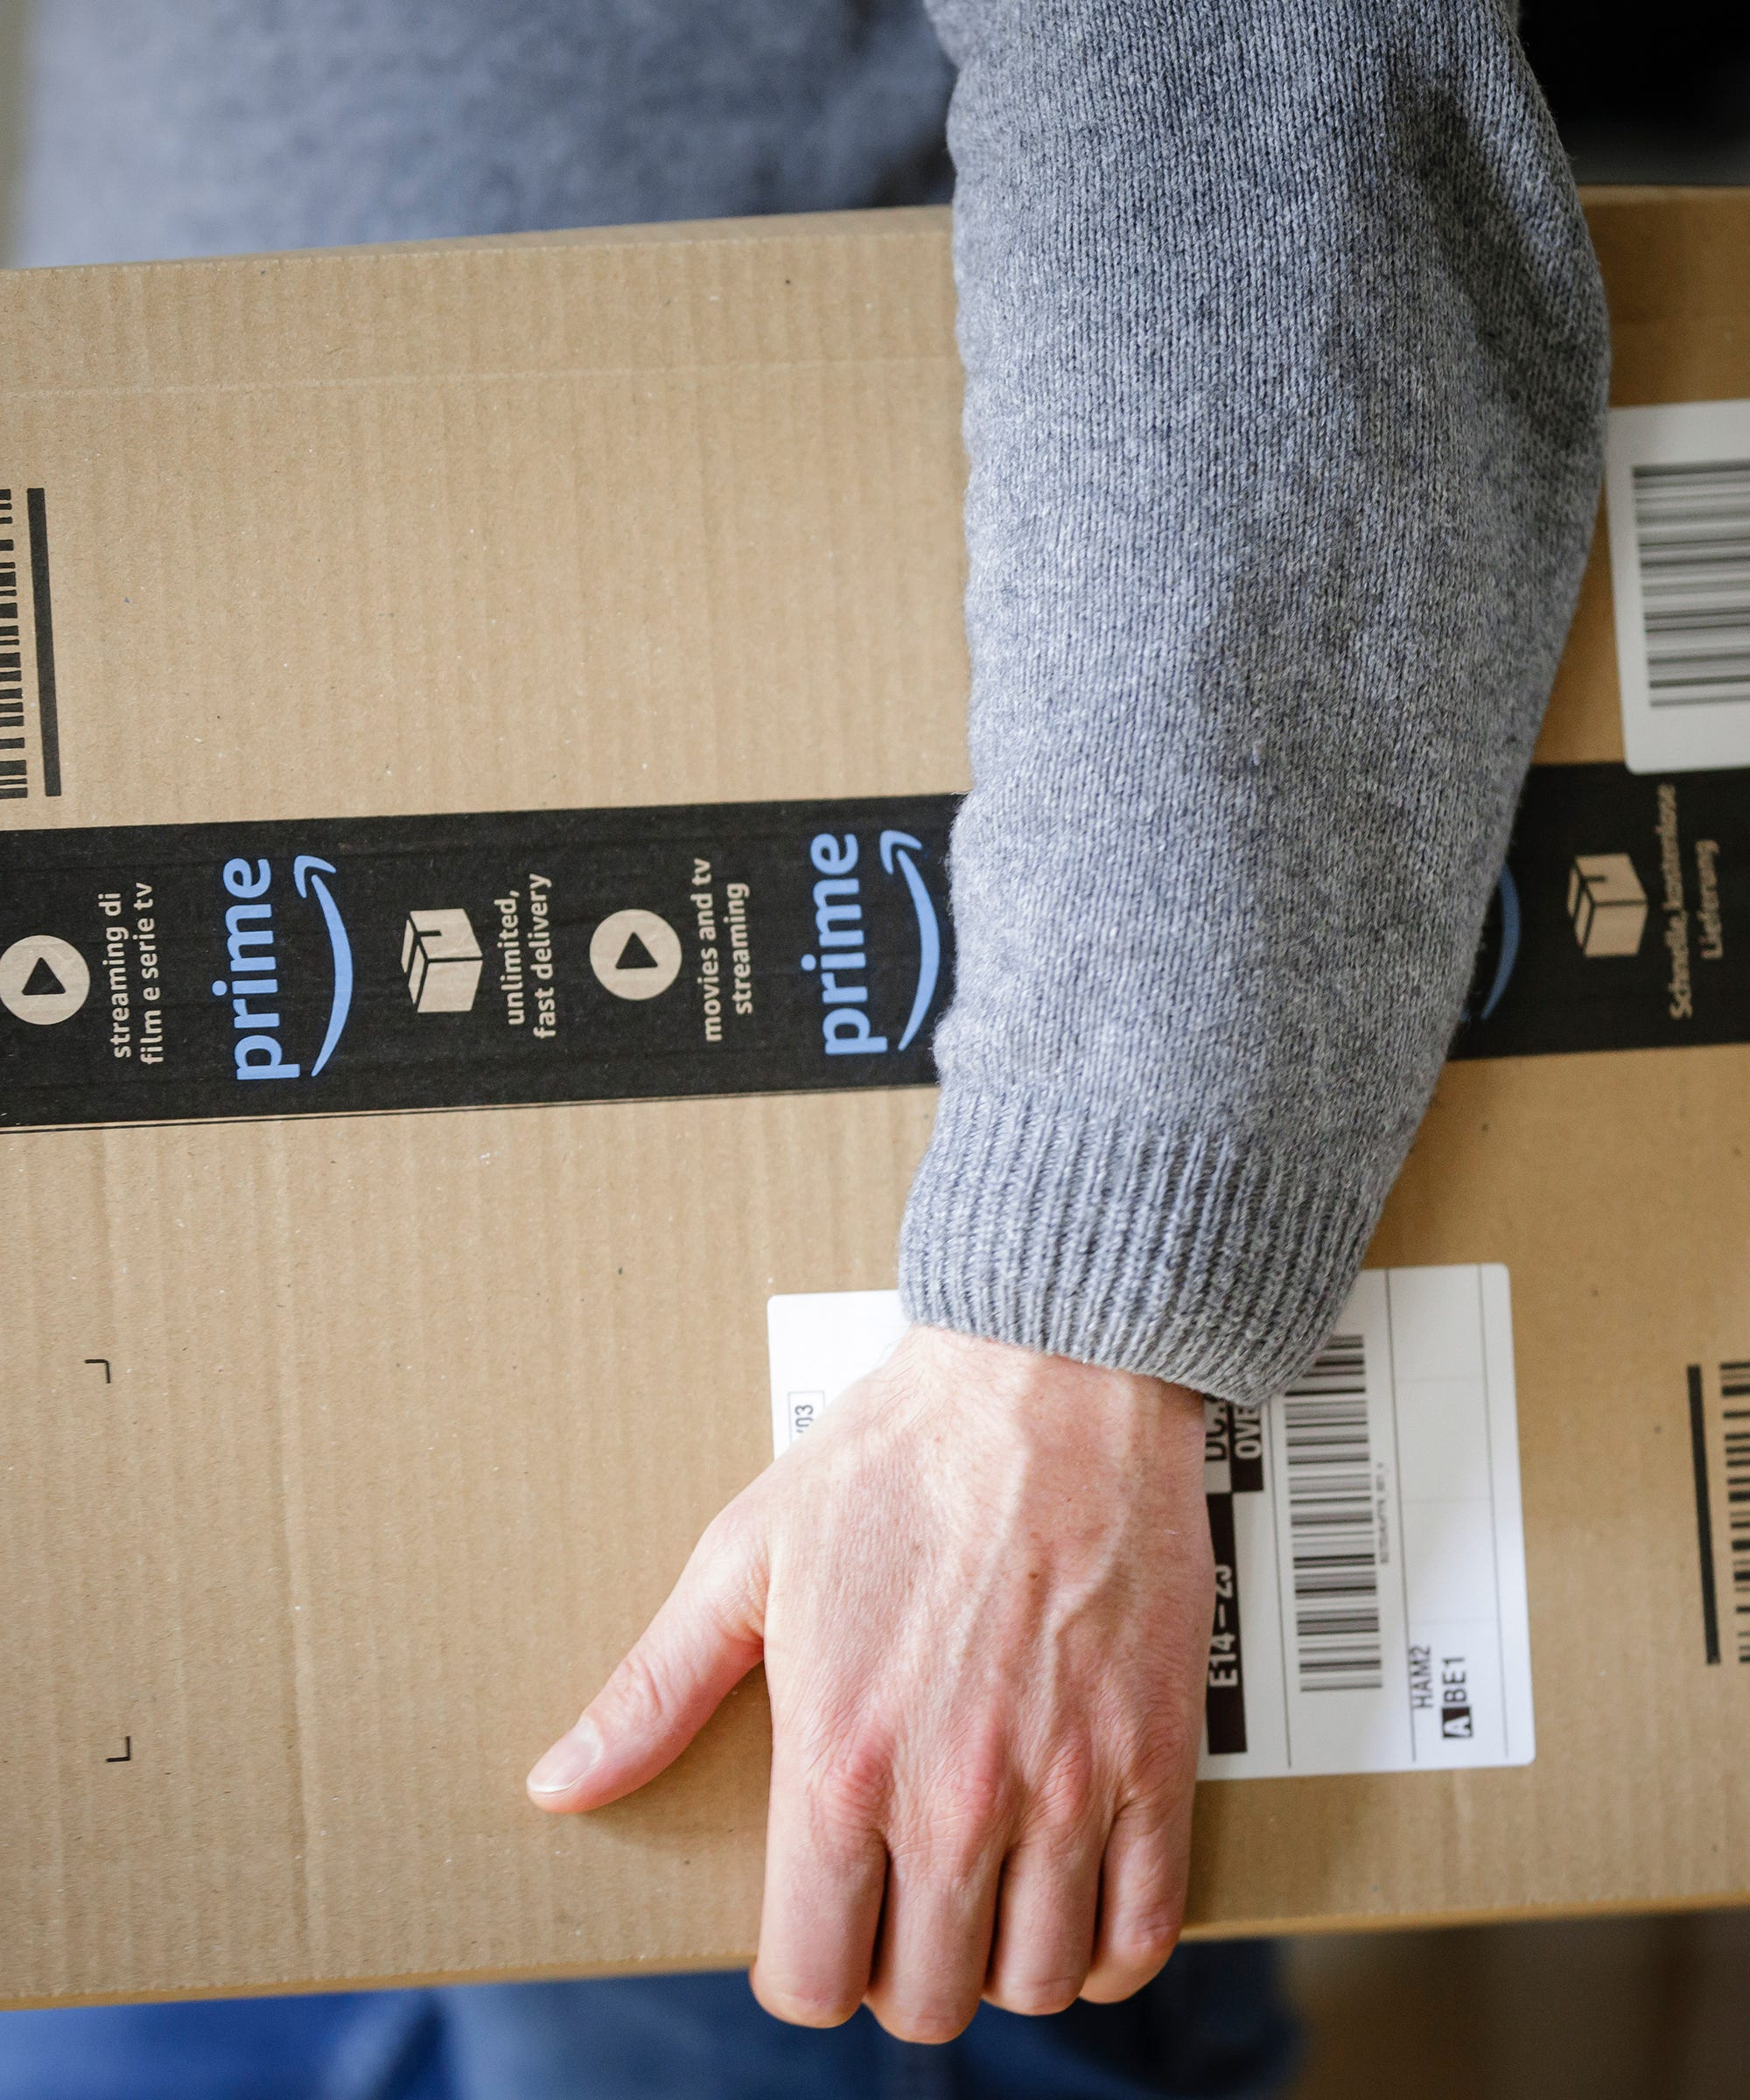 How Amazon's Return Policy Works For Prime Day Buys